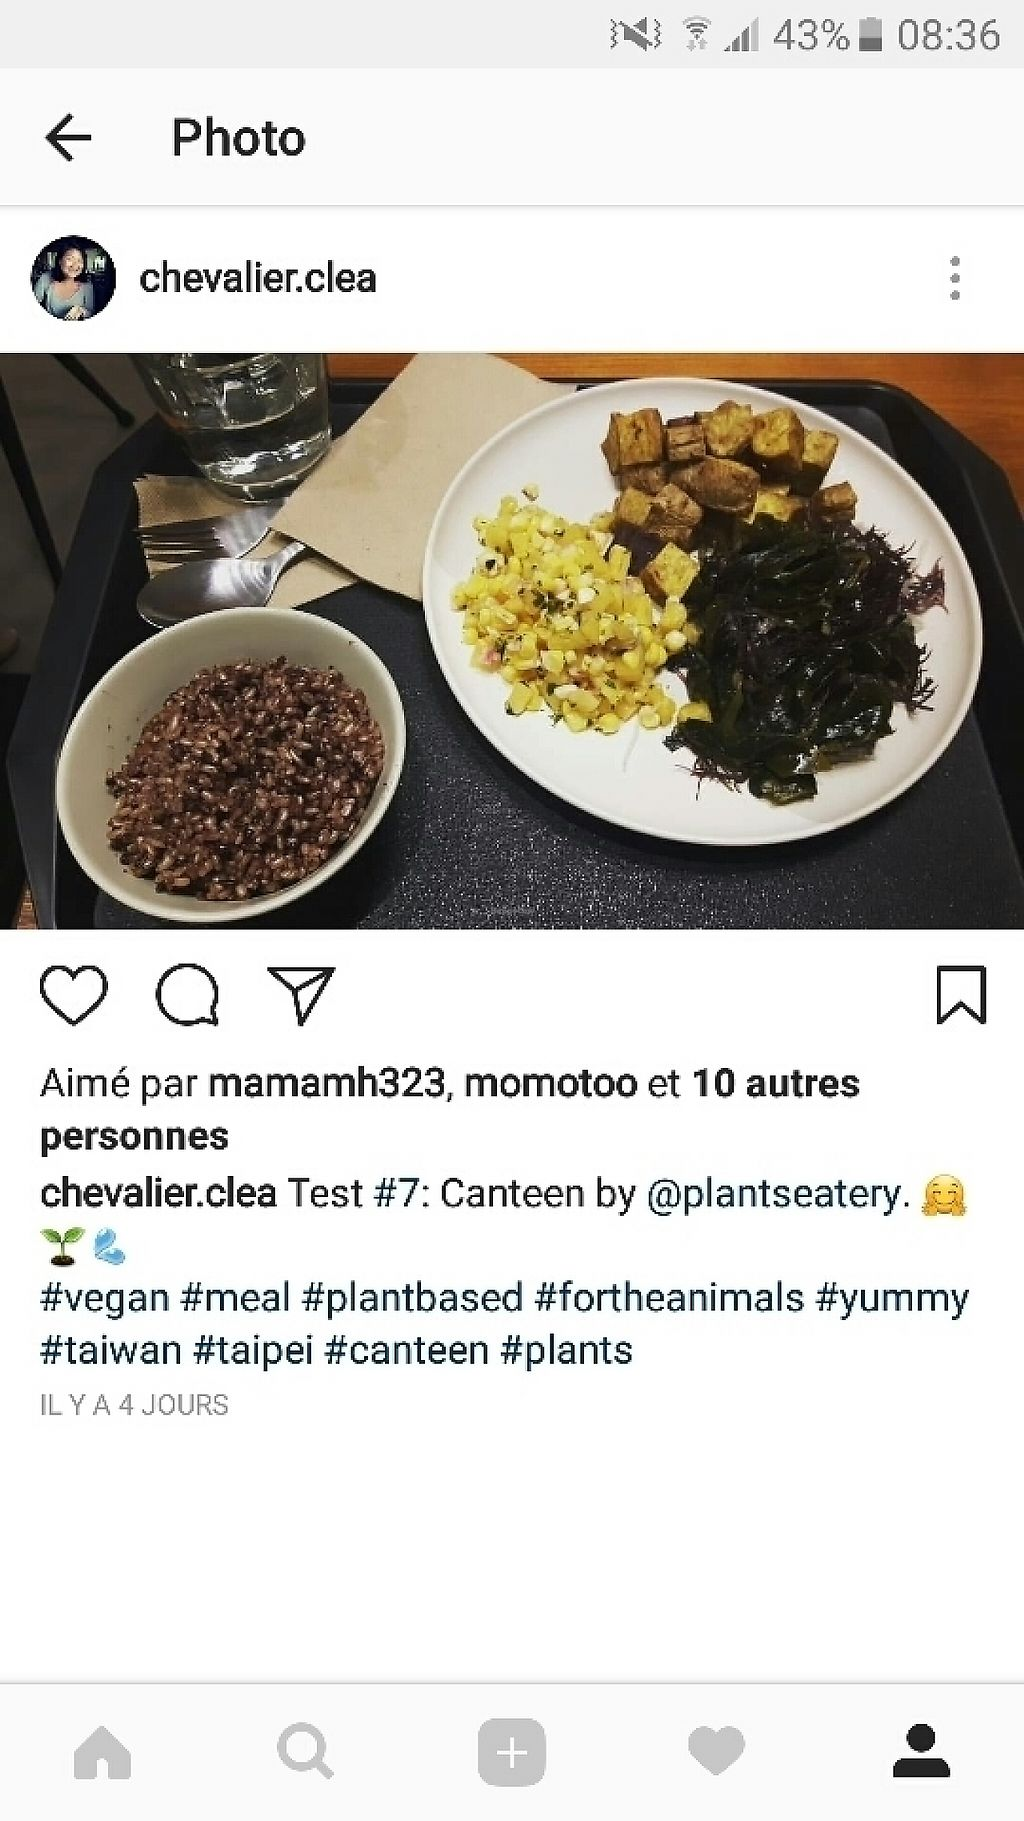 "Photo of Canteen by Plants  by <a href=""/members/profile/Cl%C3%A9aChevalier"">CléaChevalier</a> <br/>mixed seaweed, corn and pineapple salad, sweet potatoes and rice <br/> May 19, 2017  - <a href='/contact/abuse/image/92221/260124'>Report</a>"